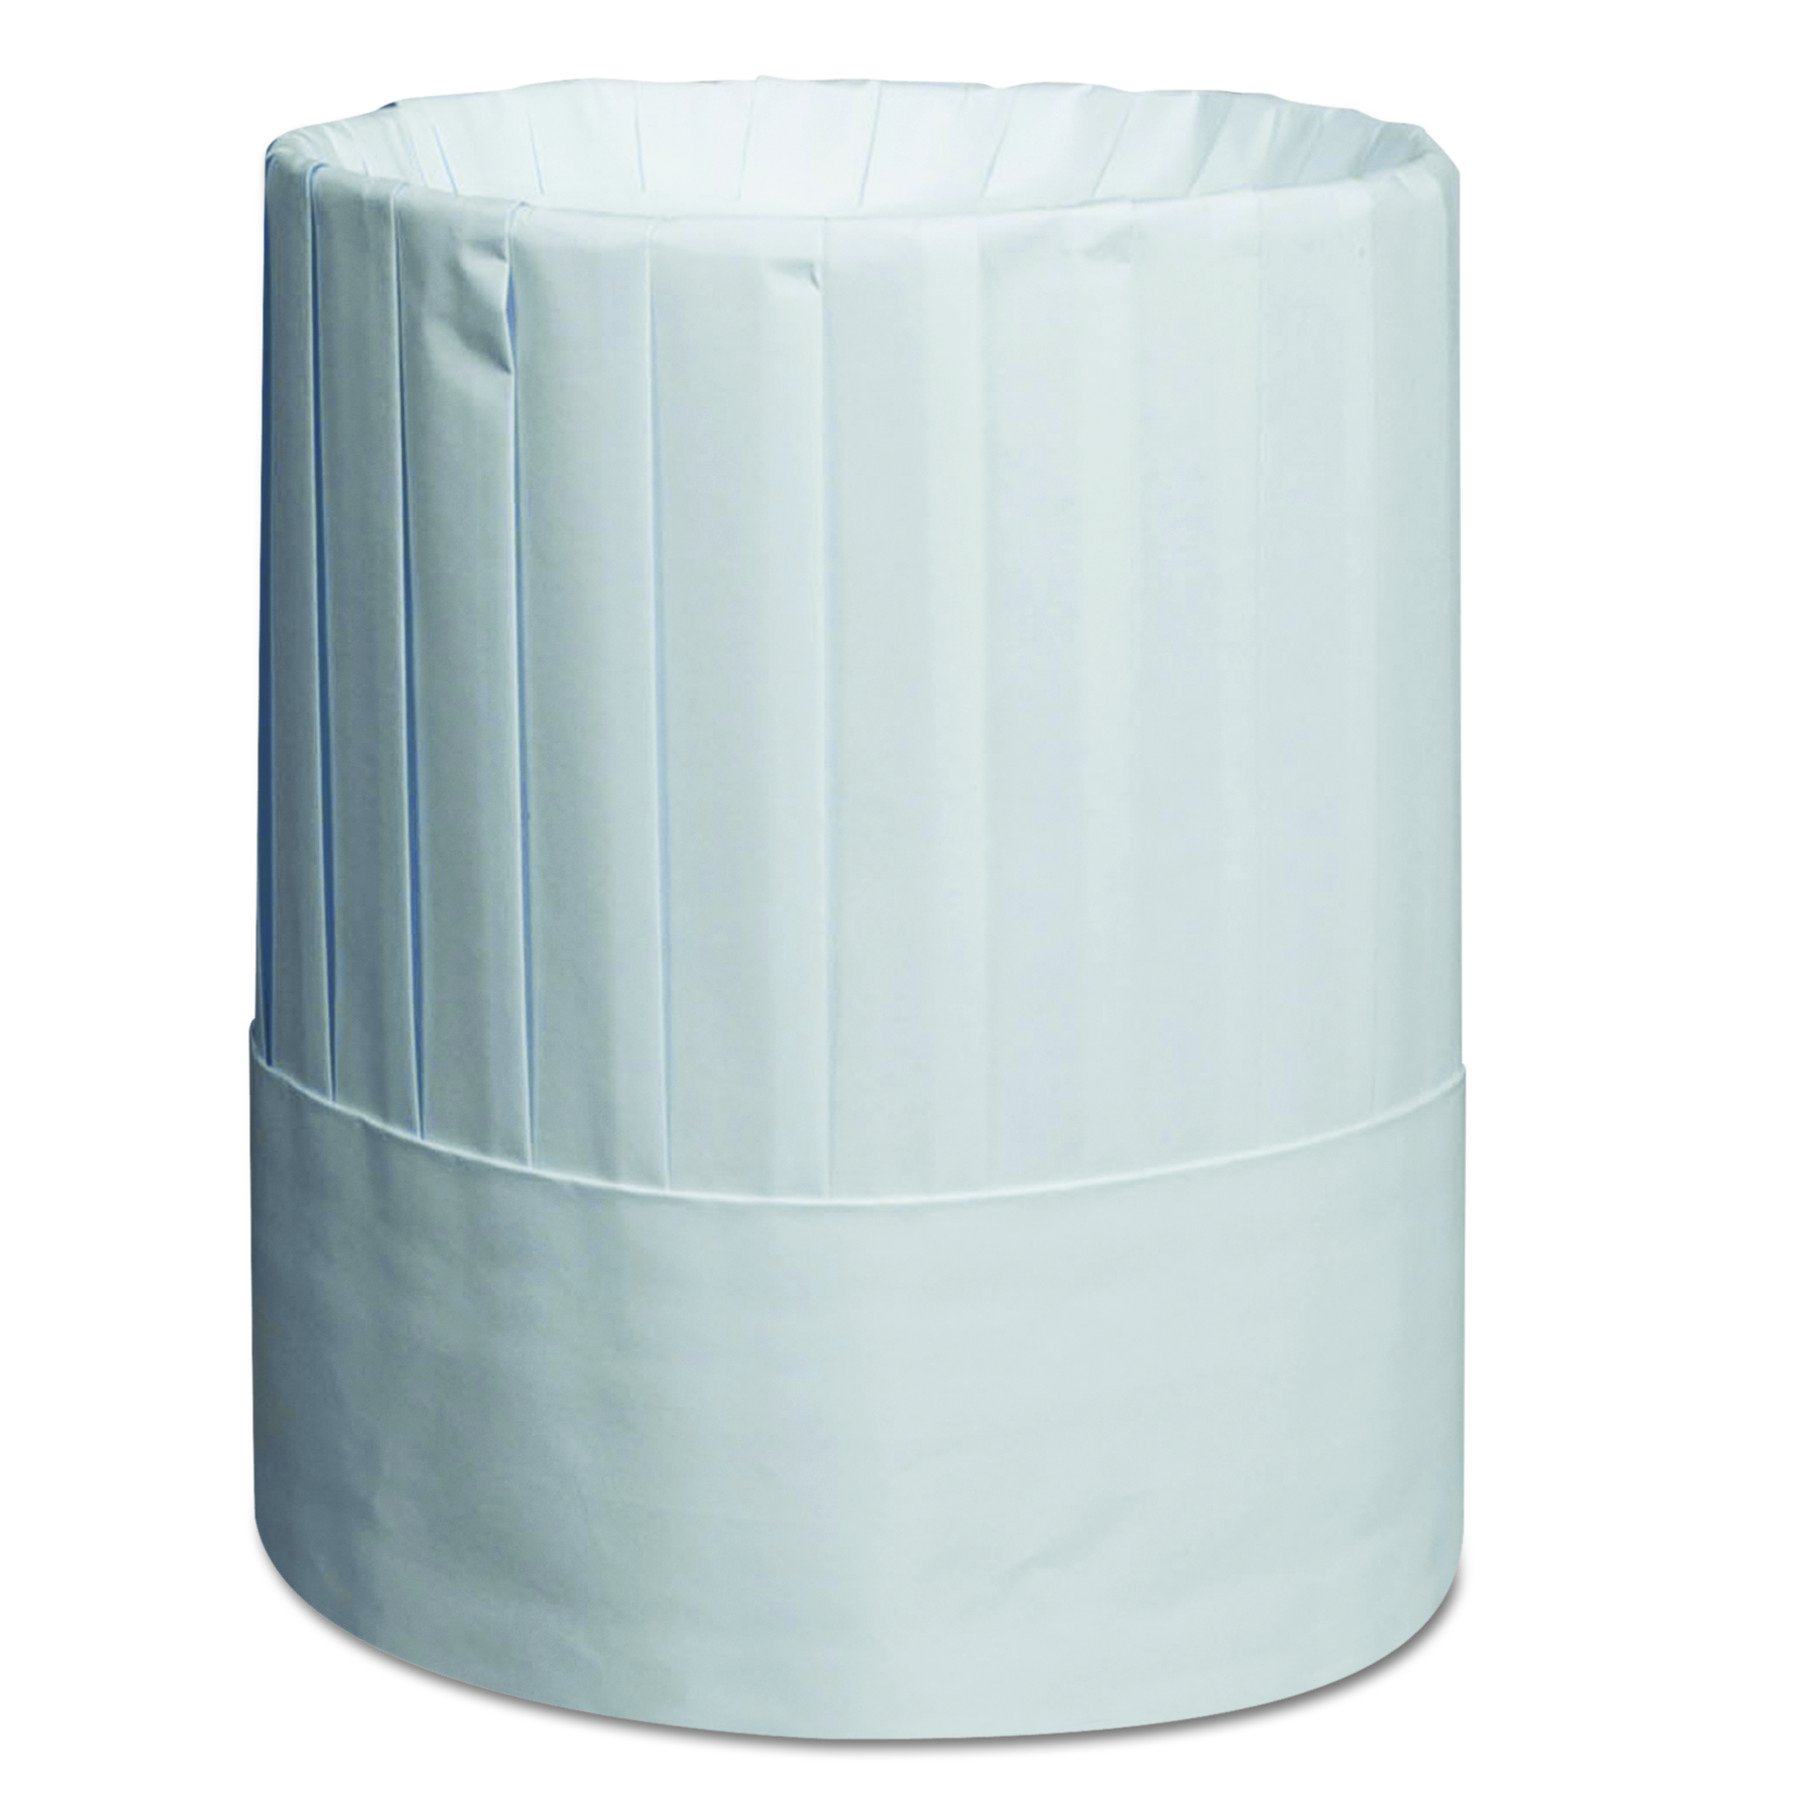 Royal RCH9 Pleated Chef's Hats, Paper, White, Adjustable, 9 In Tall (Case of 24)